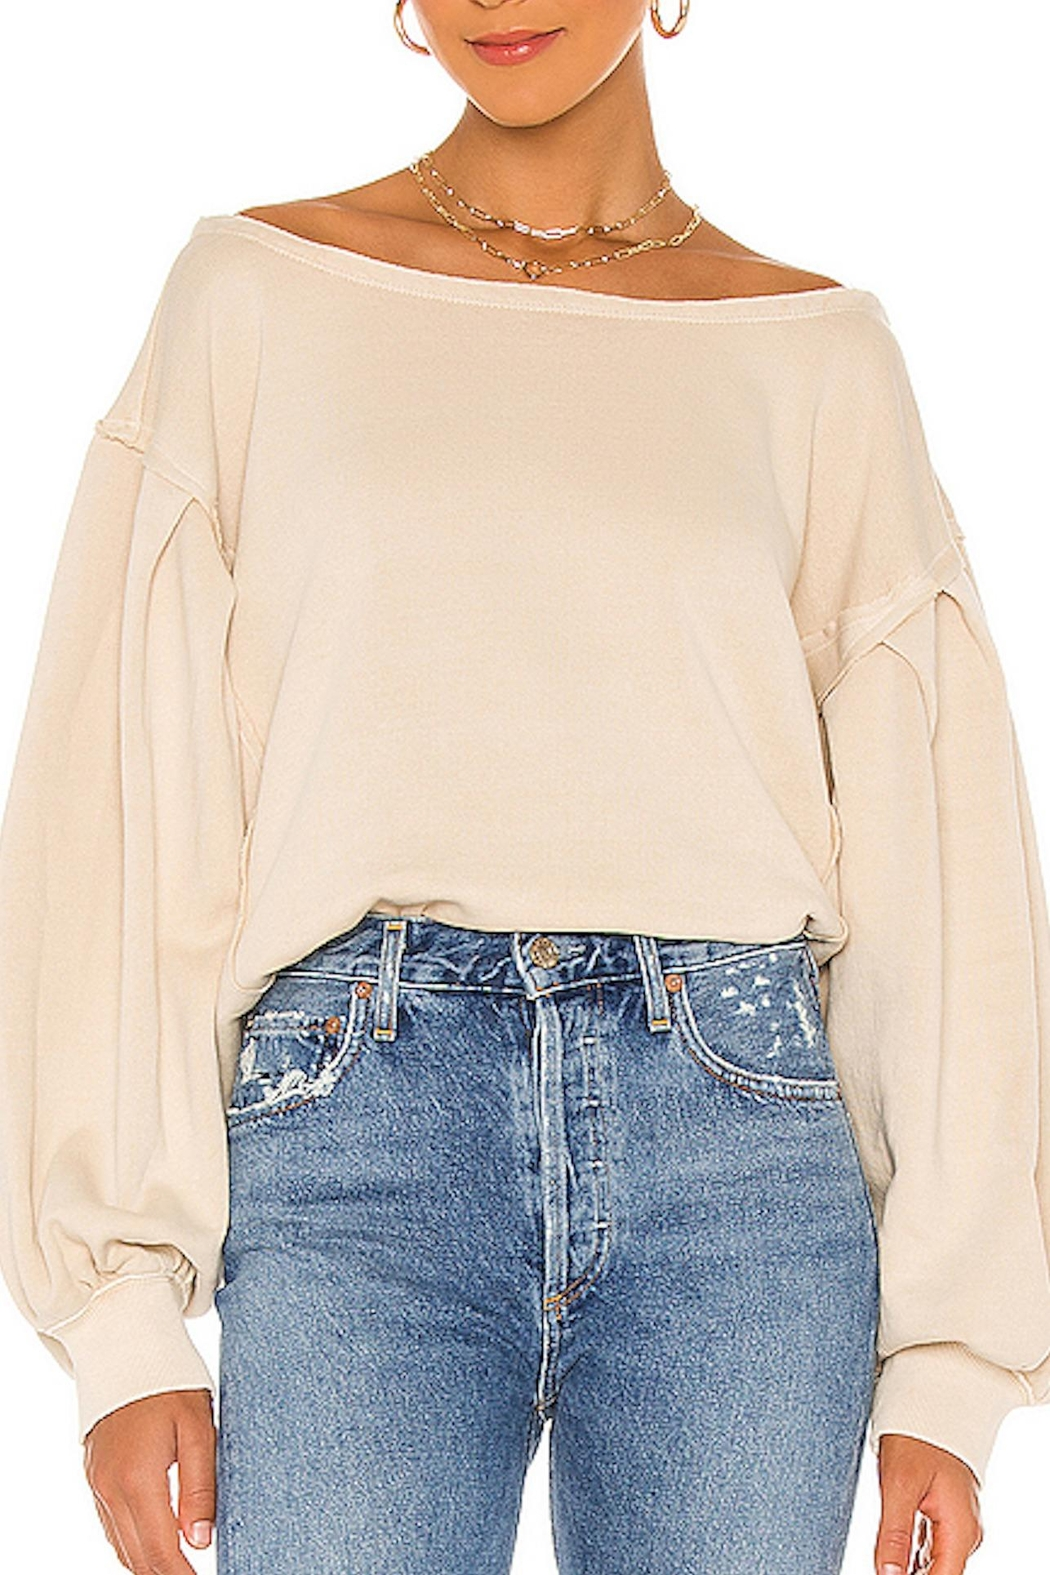 Free People Fp Rosey Tee - Front Full Image